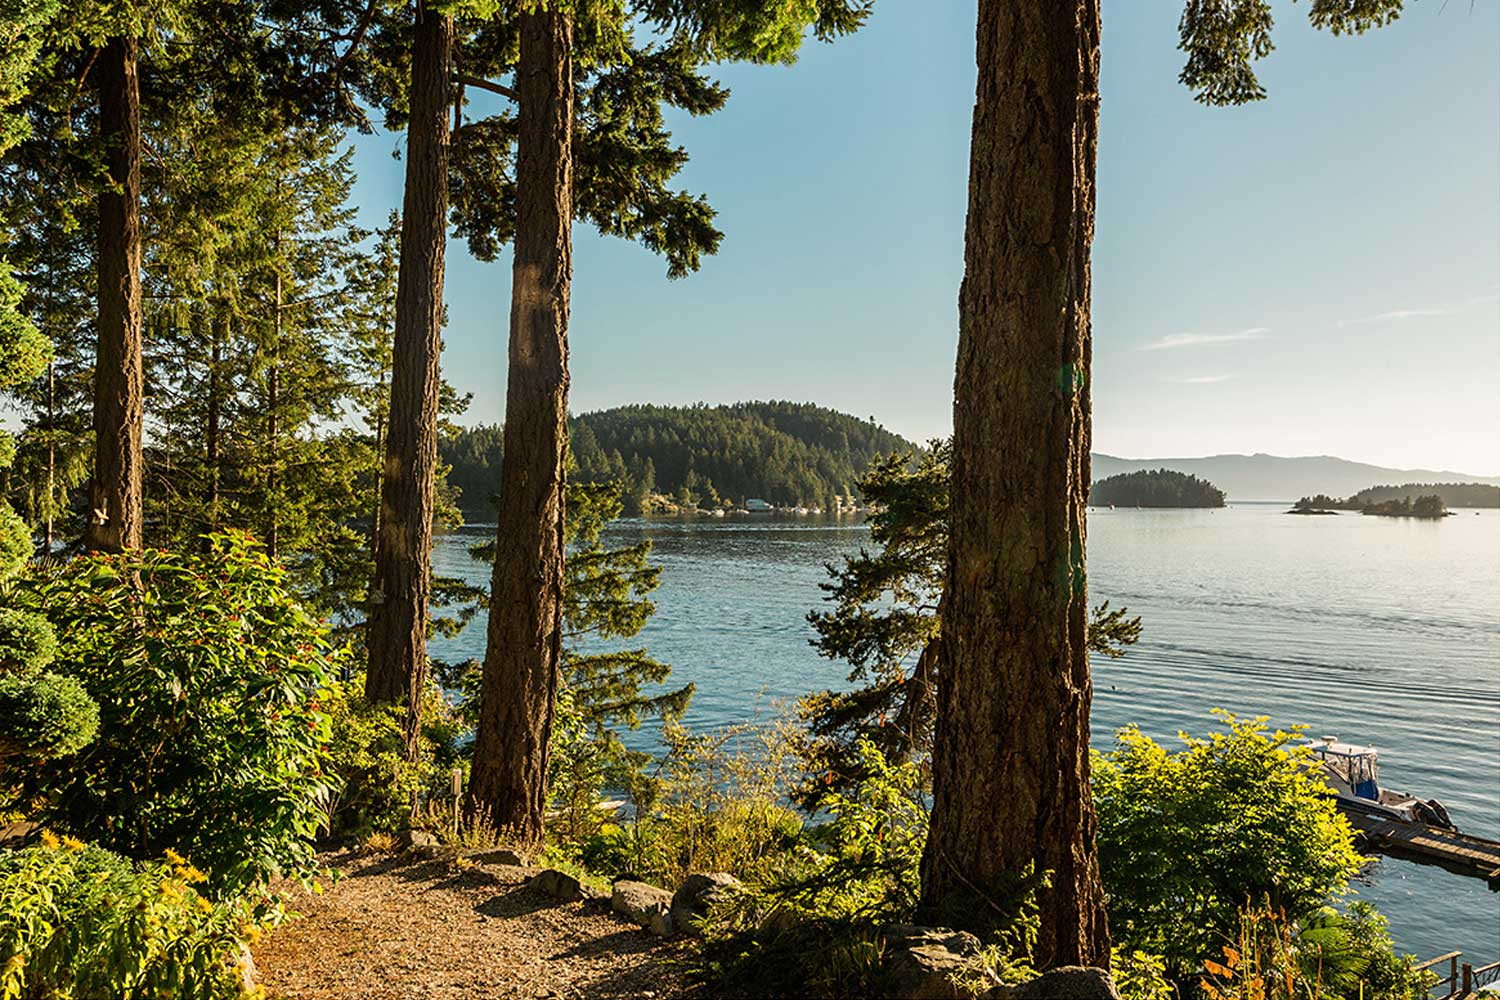 A garden path winds along the shoreline with the ocean to the right at this gorgeous Pender Harbour resort.